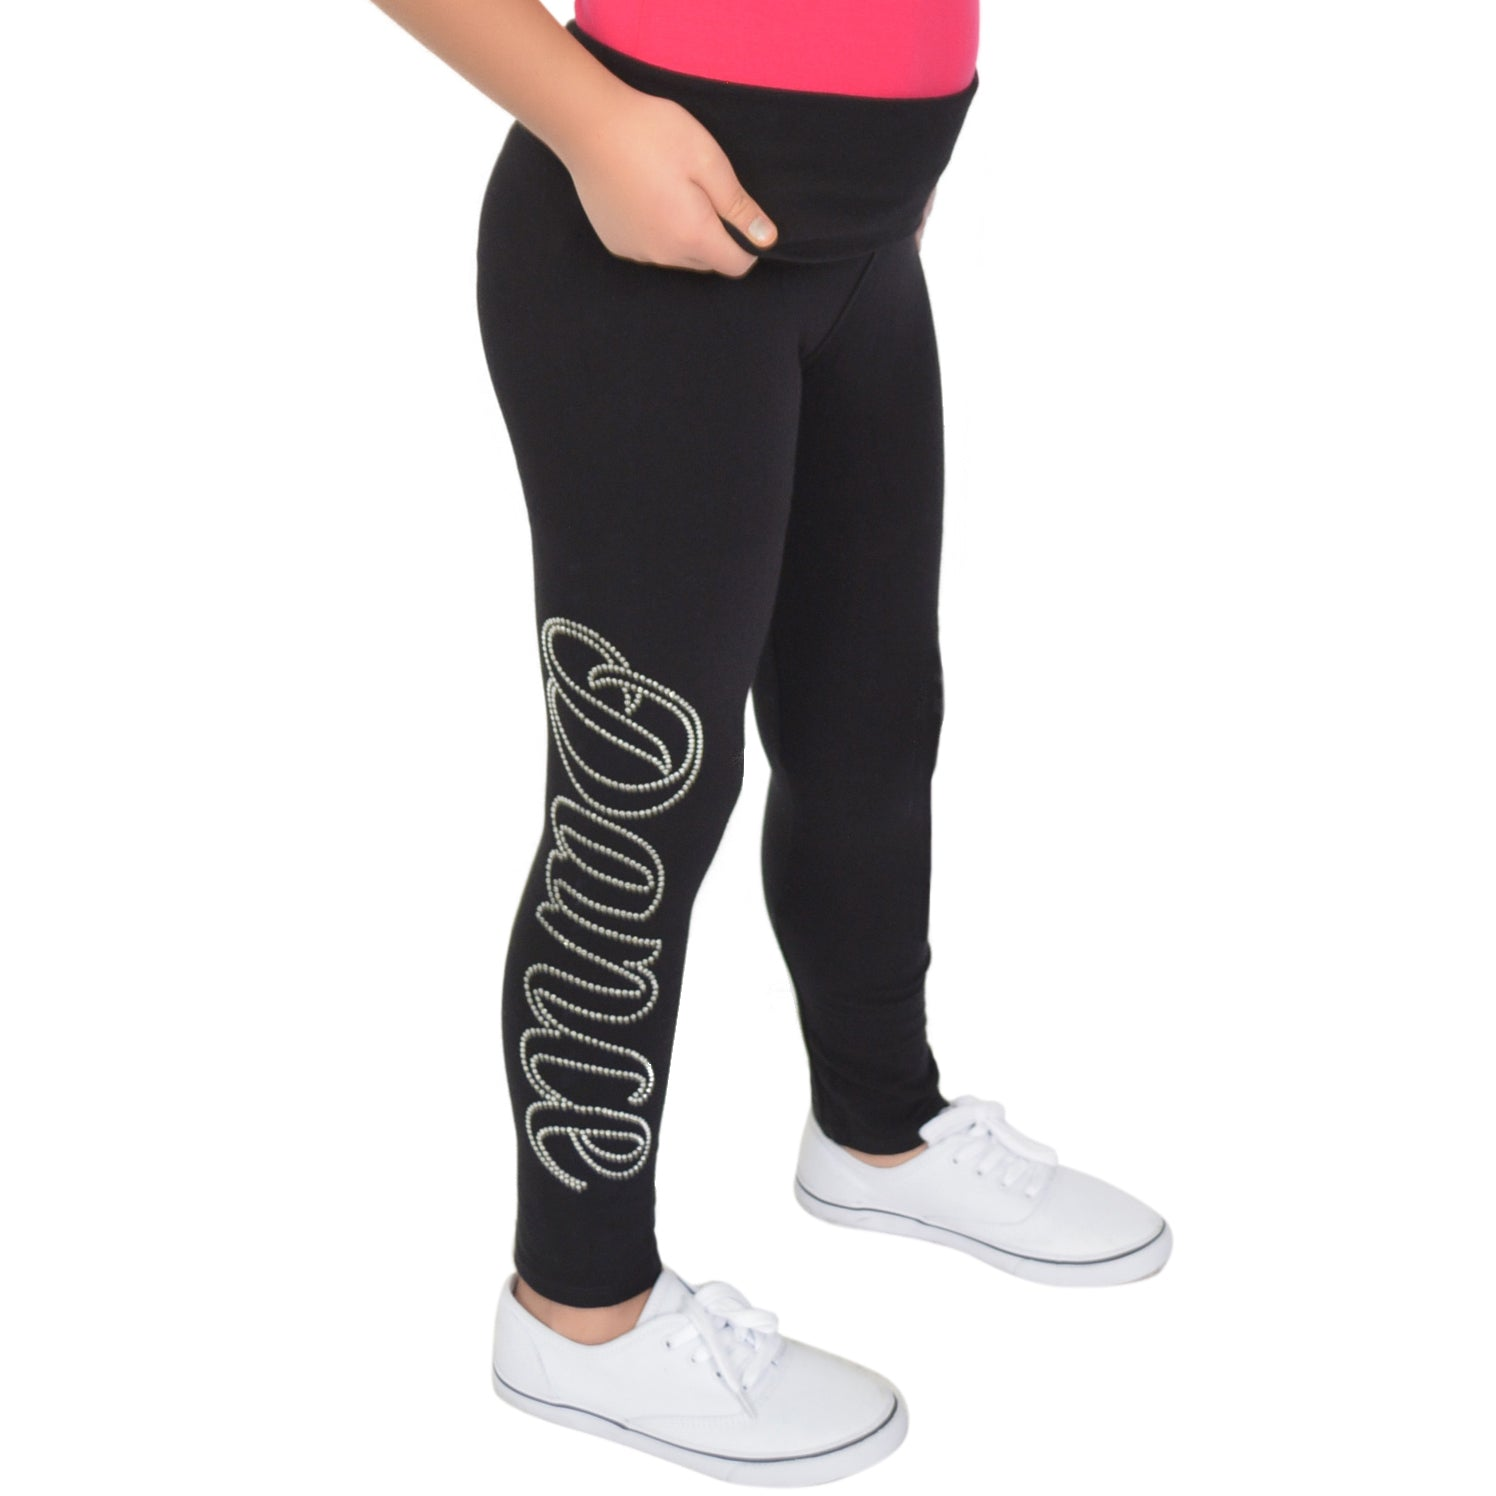 Girl's Dance Rhinestone Foldover Cotton Leggings